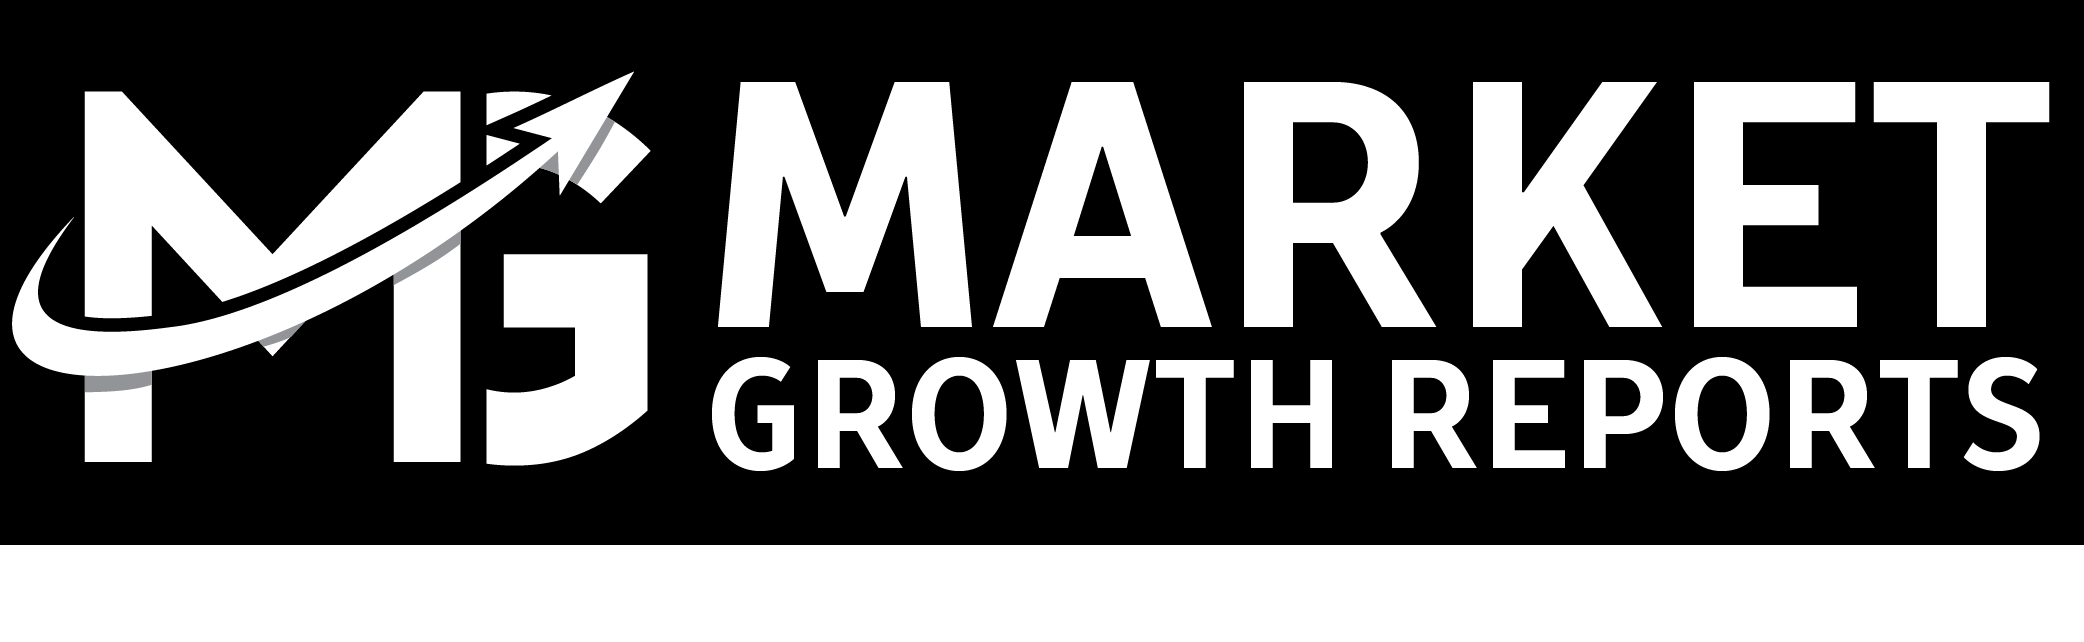 Business Process Management Platform-as-a-Service (BPM PaaS)  Market Size, Growth, Defination, Business Opportunities And Forecast To 2026 Research Reportwith the aid ofMarket Growth Reports